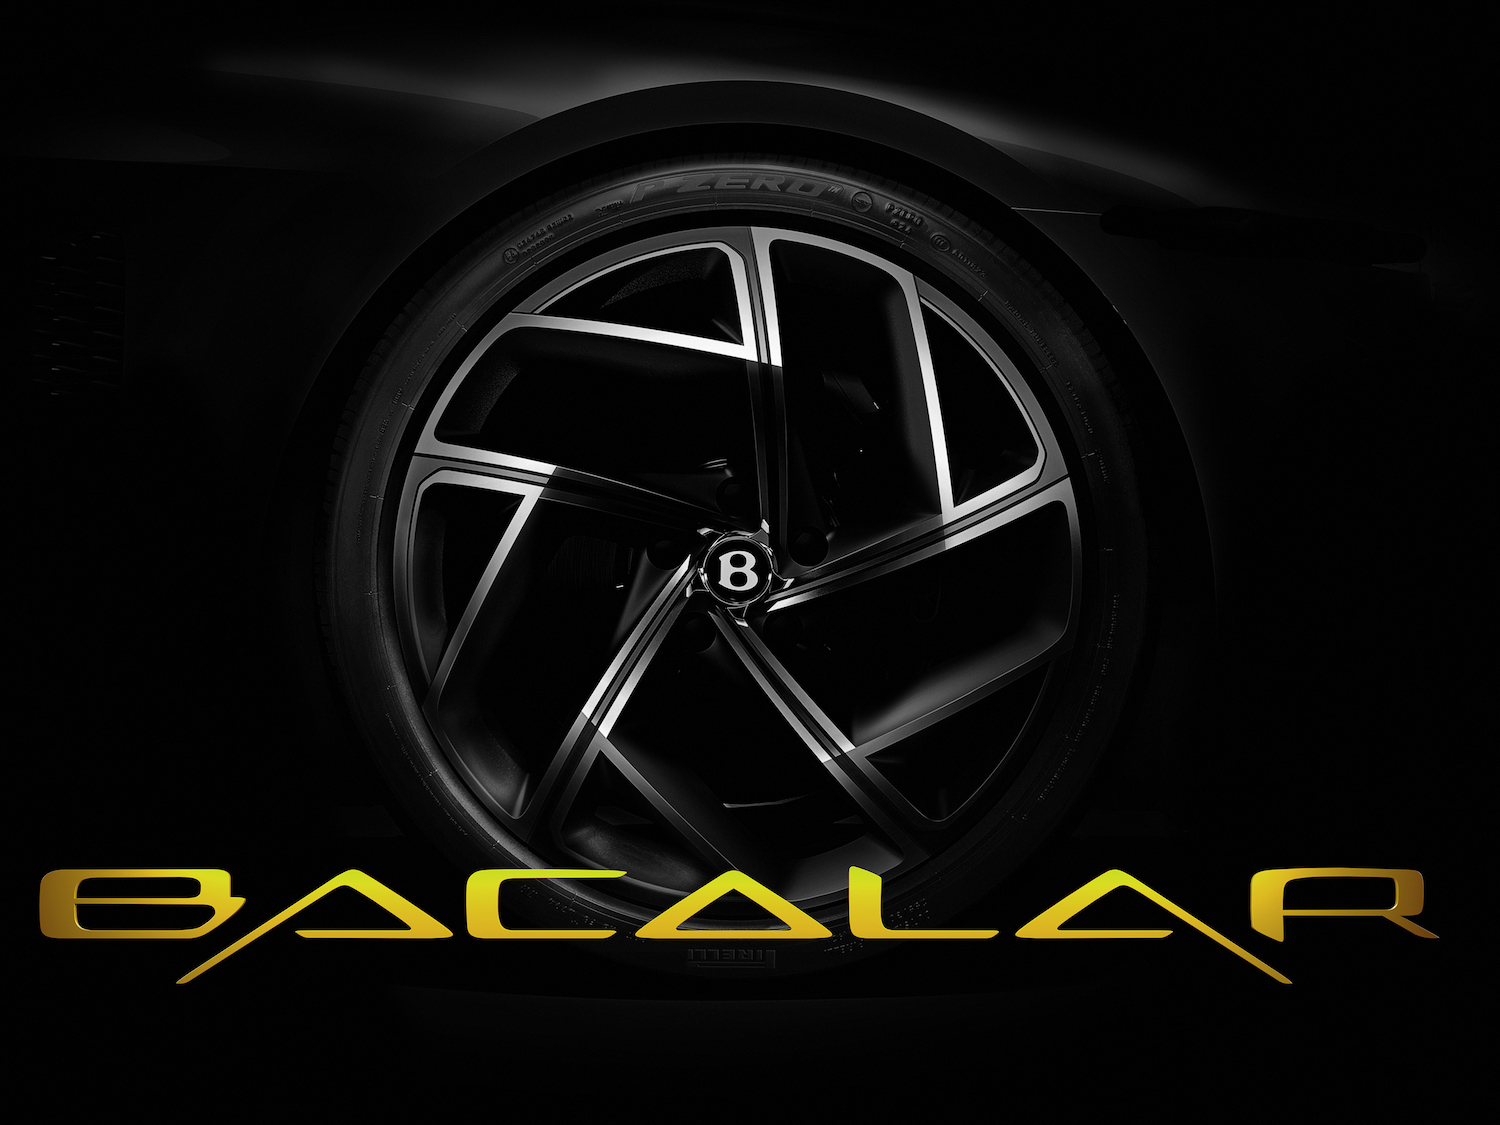 Limited-edition coachbuilt Bentley Bacalar will debut at Geneva thumbnail